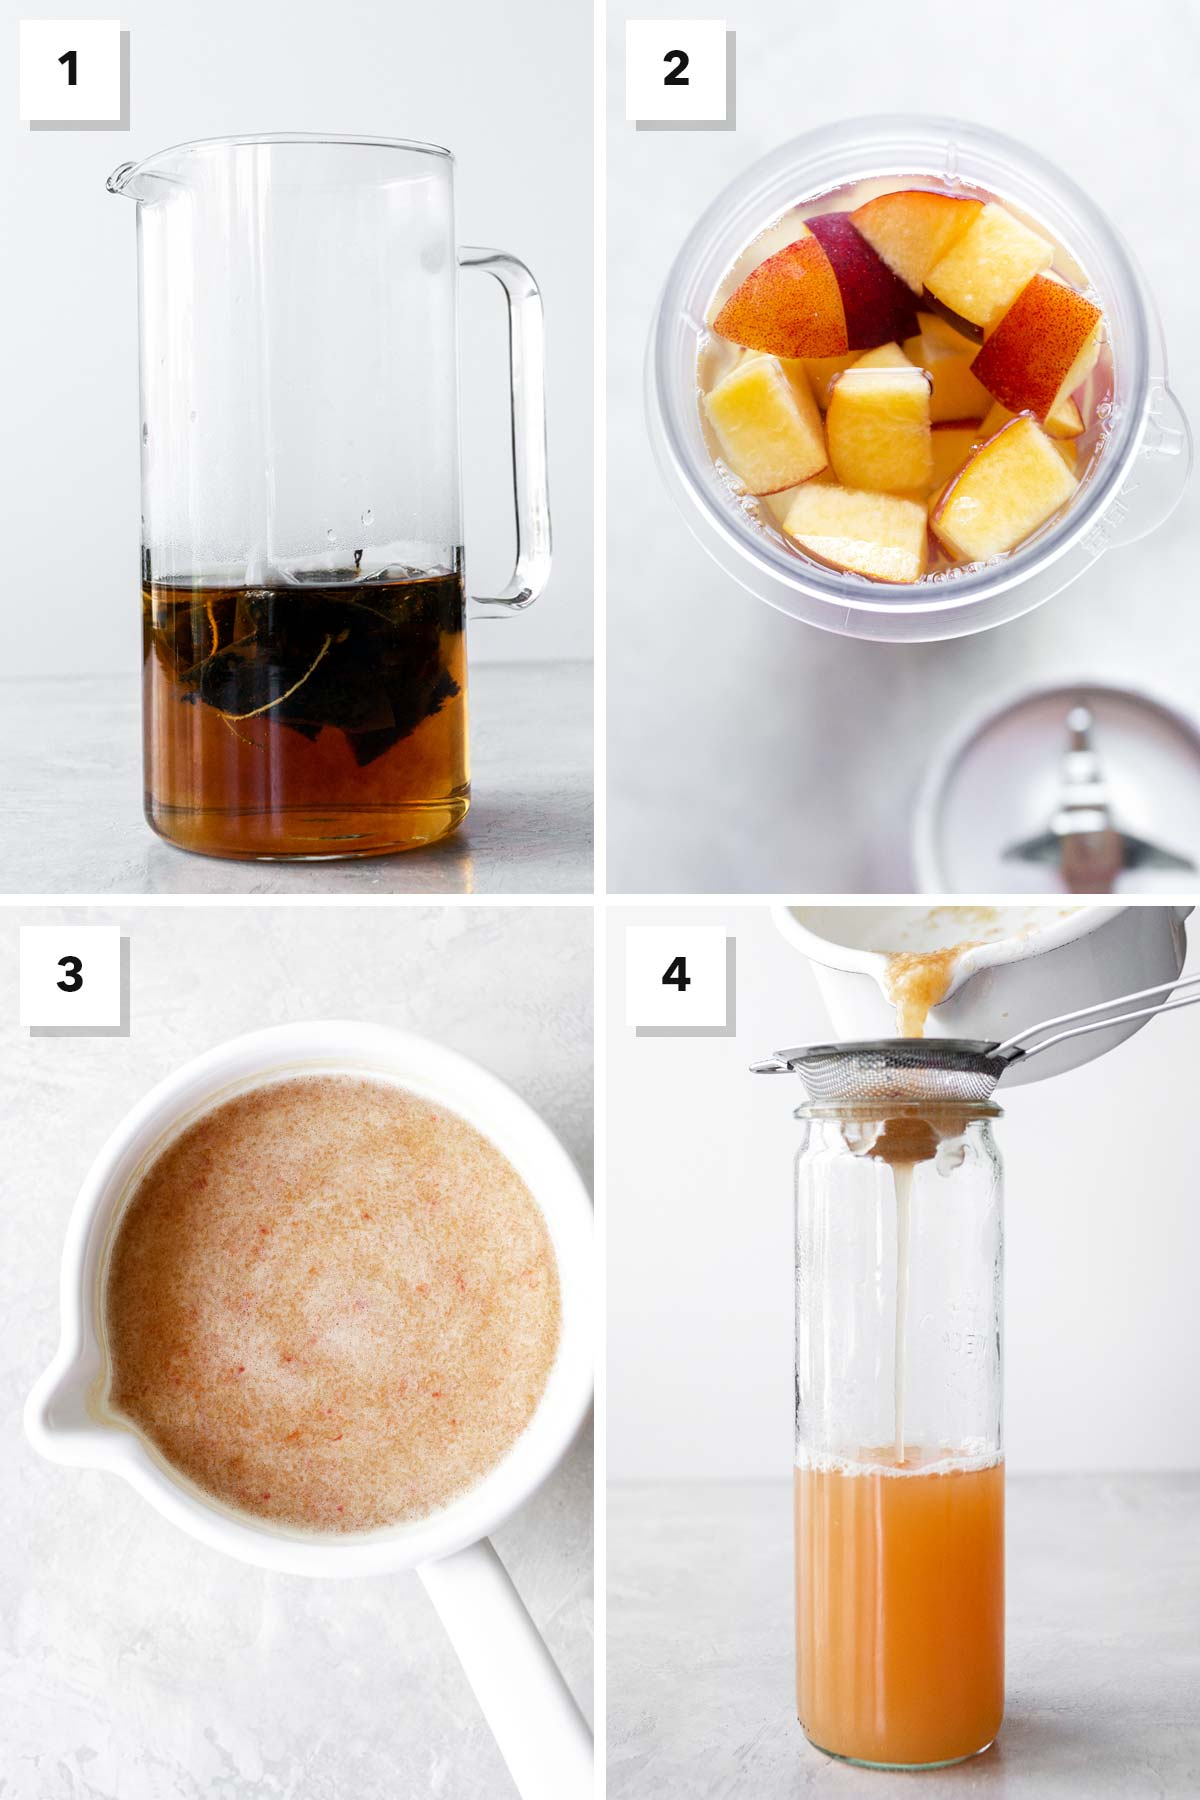 Four photo collage showing steps to make peach iced tea.